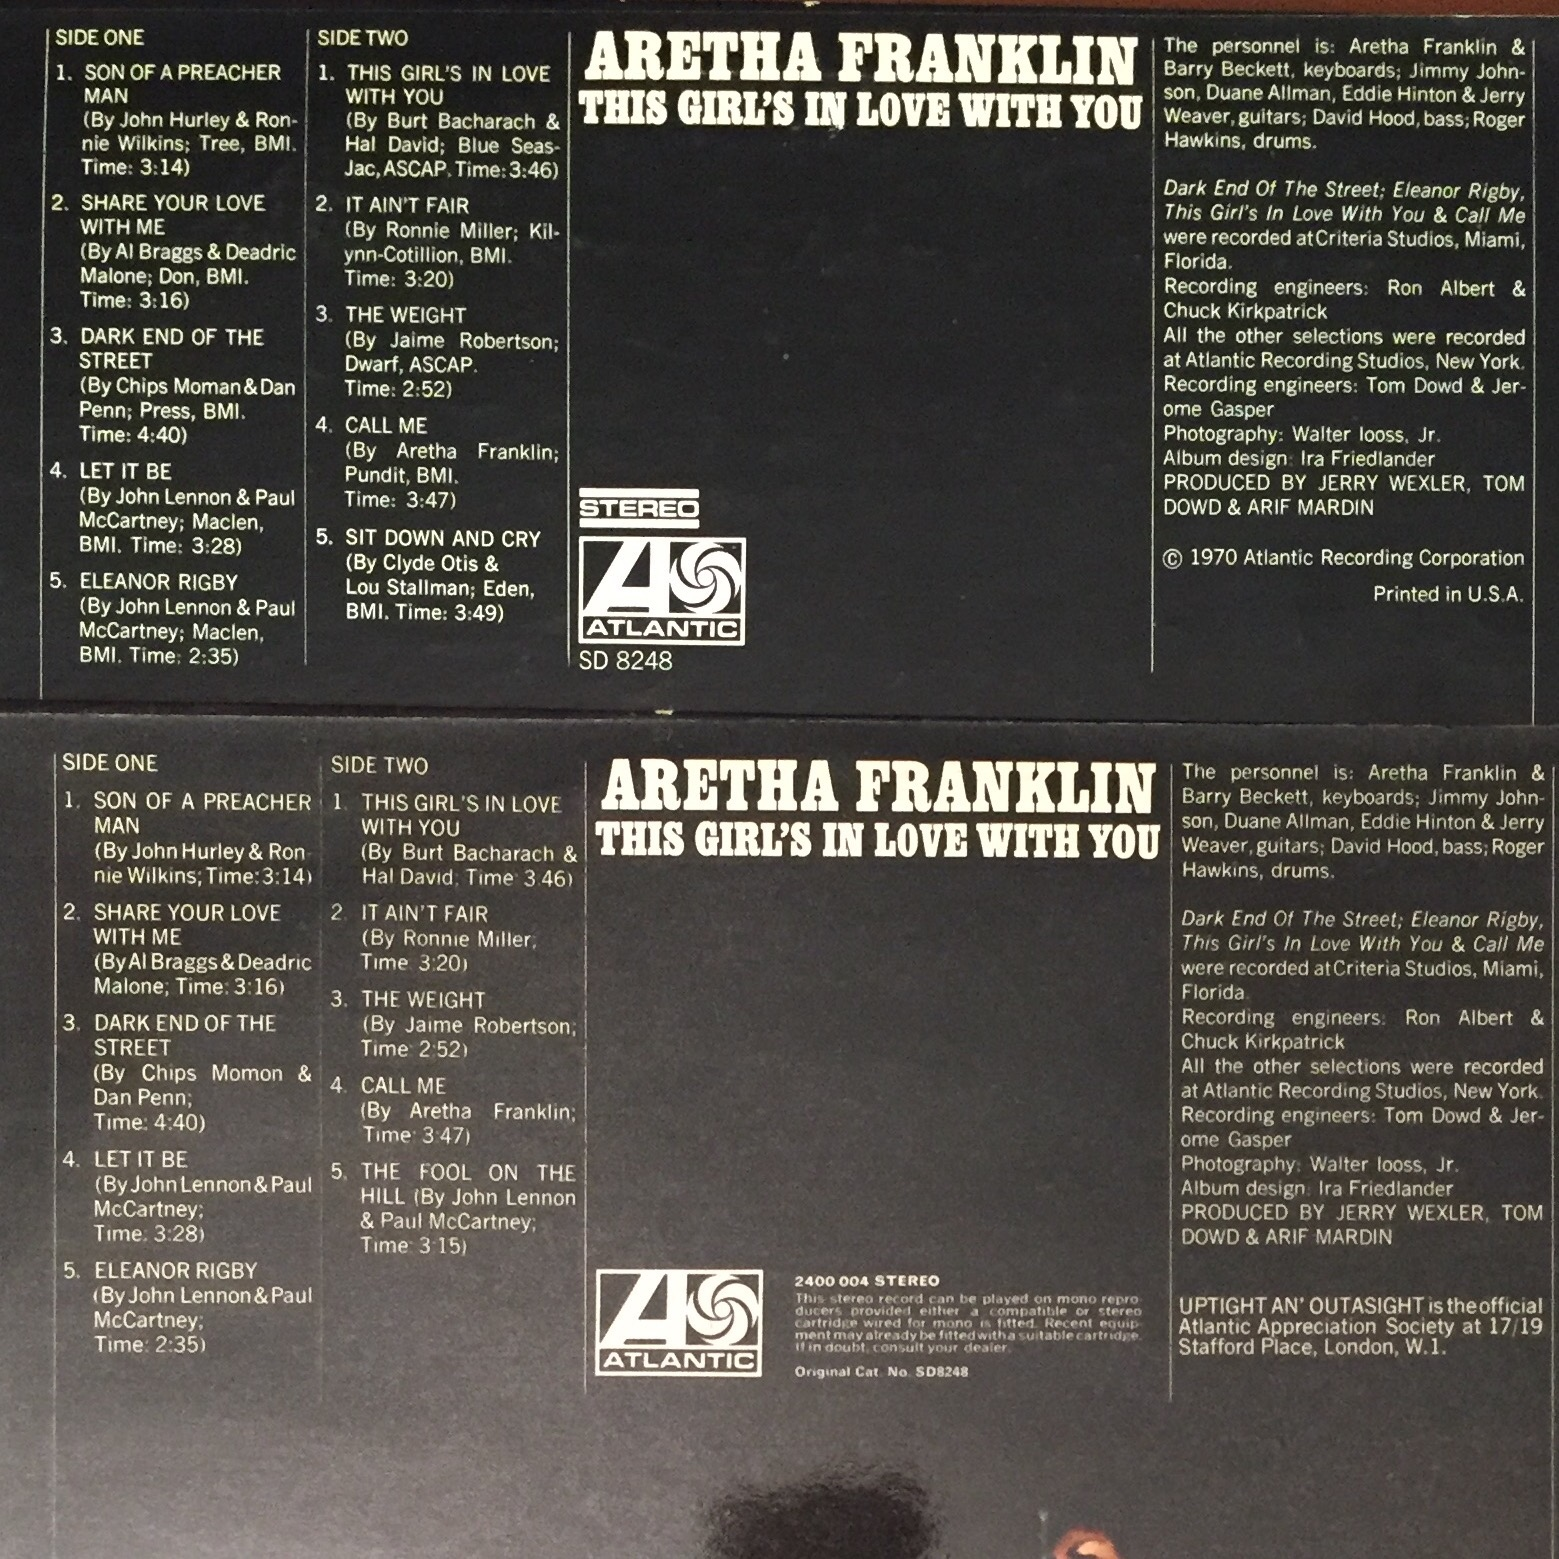 aretha franklin songs - photo #14